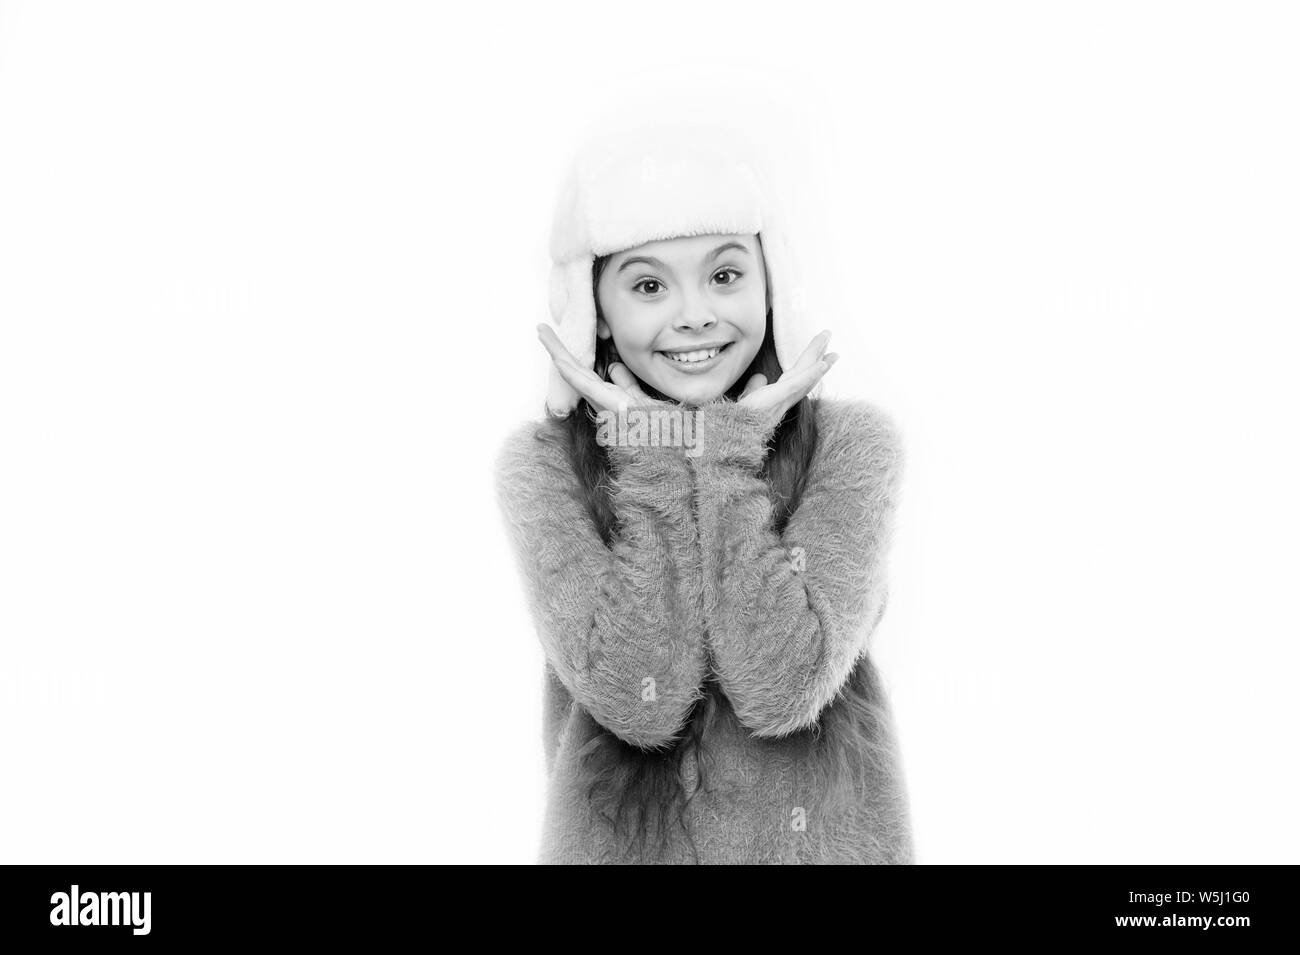 0f2985075 Furry Hat Stock Photos & Furry Hat Stock Images - Alamy